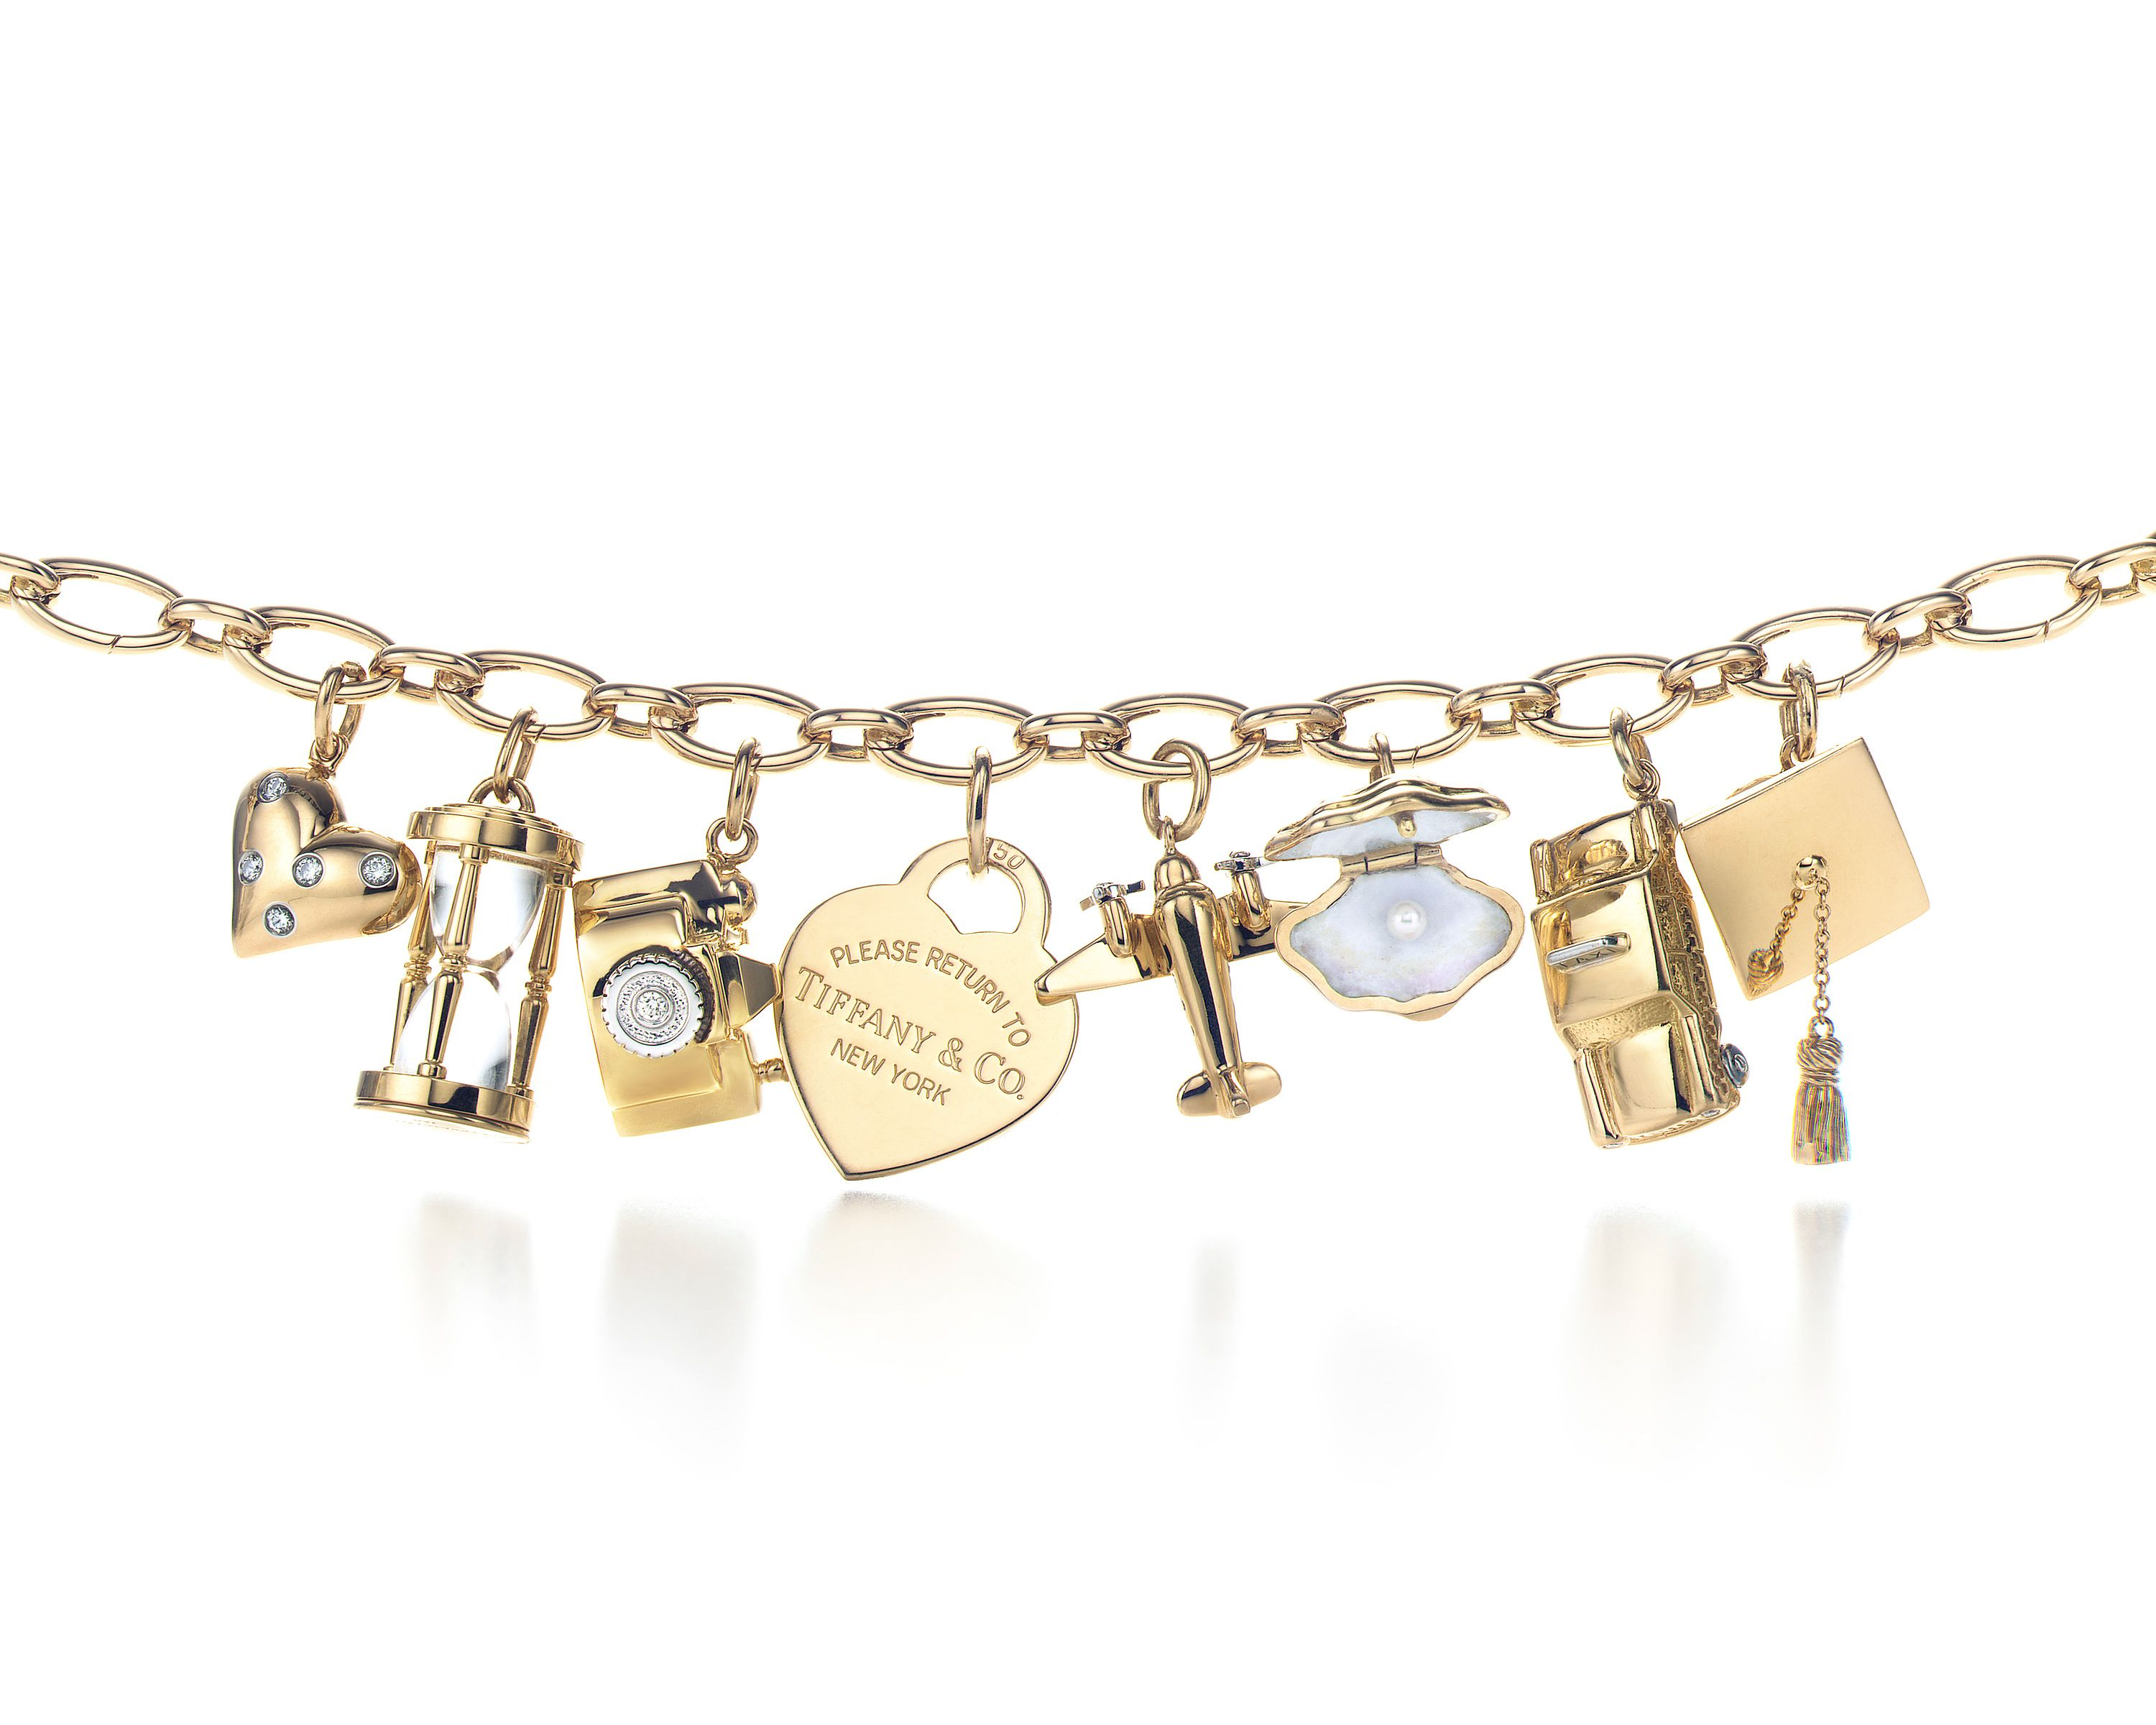 Tiffany & Co Charm bracelet in gold accesorios